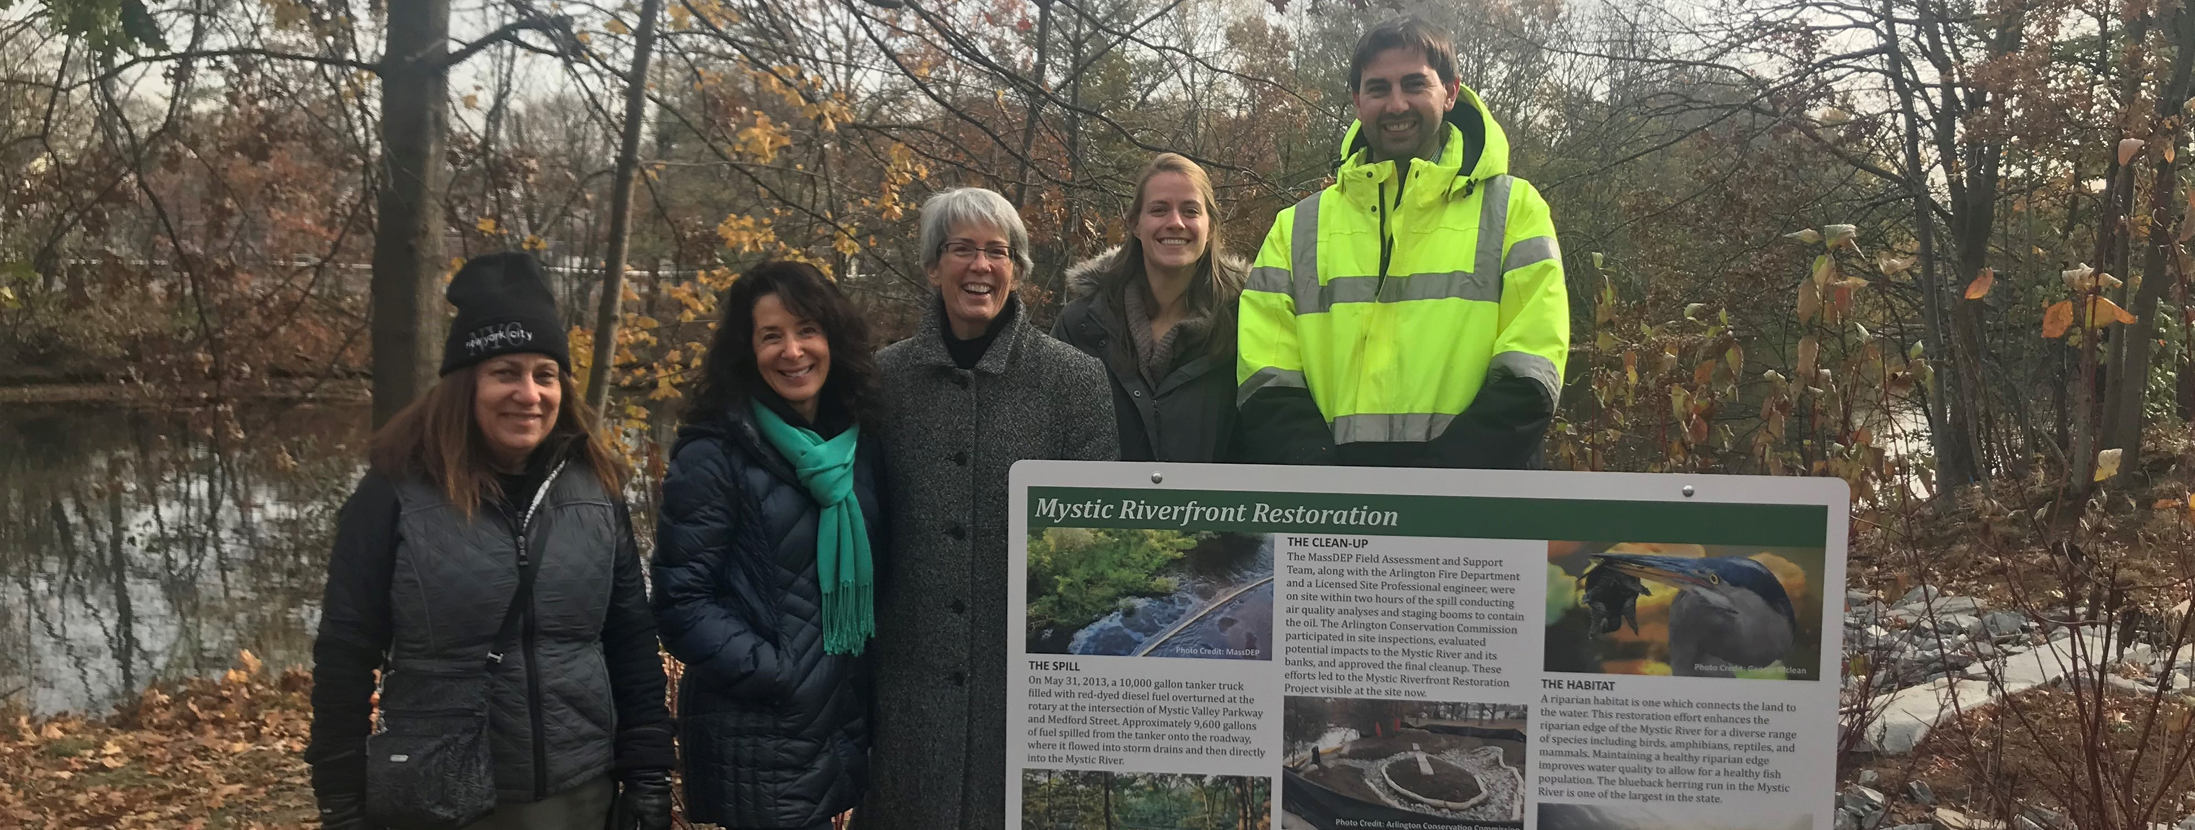 MassDEP's Natural Resource Damages (NRD) Program supported the Mystic Riverfront Restoration project on the Mystic River in Arlington, MA.  Shown above are representatives from DCR, Arlington Conservation Commission, MassDEP, and Arlington DPW.